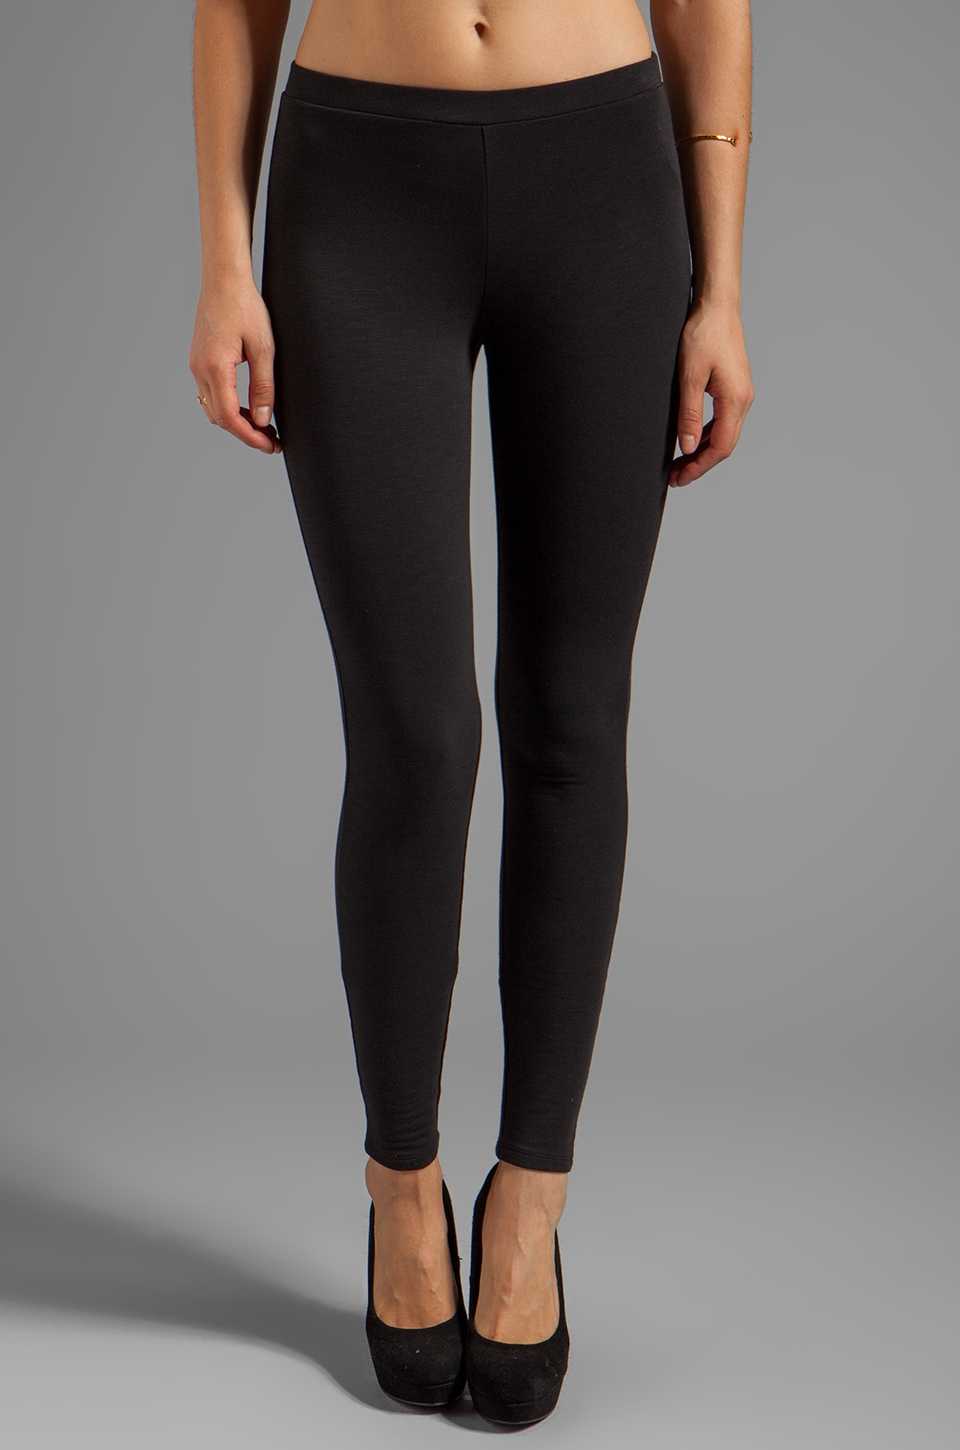 Soft Joie Abilene Legging in Caviar